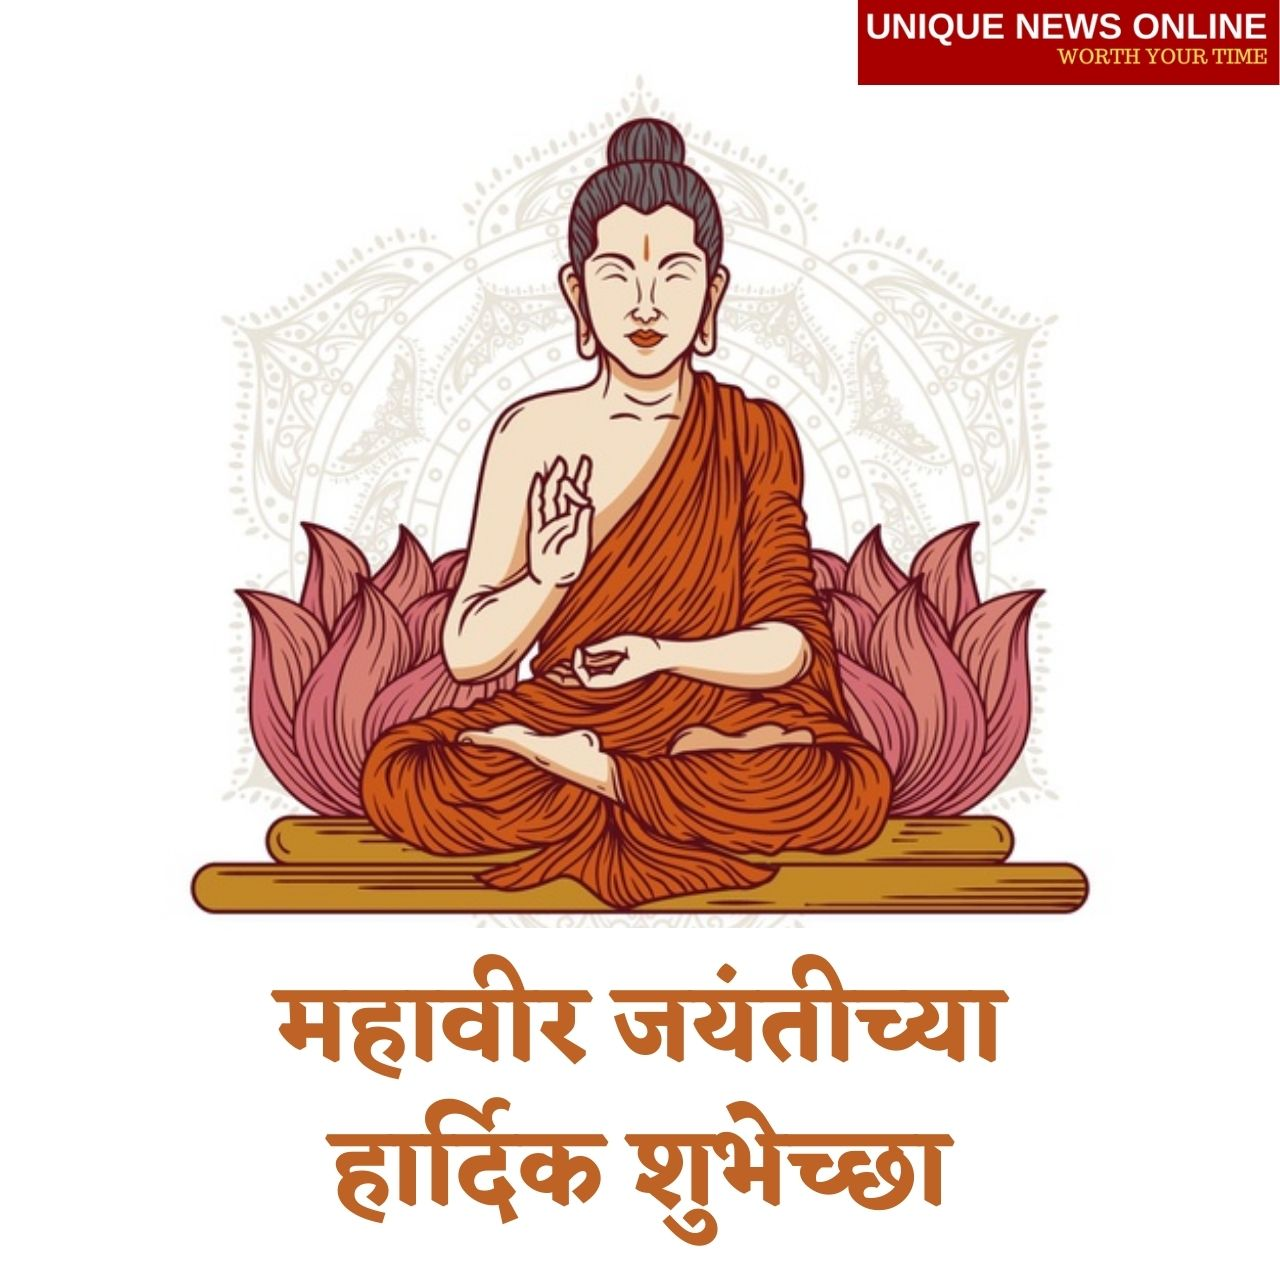 Happy Mahavir Jayanti 2021 Wishes in Marathi, Messages, Greetings, Quotes, and Images to Share